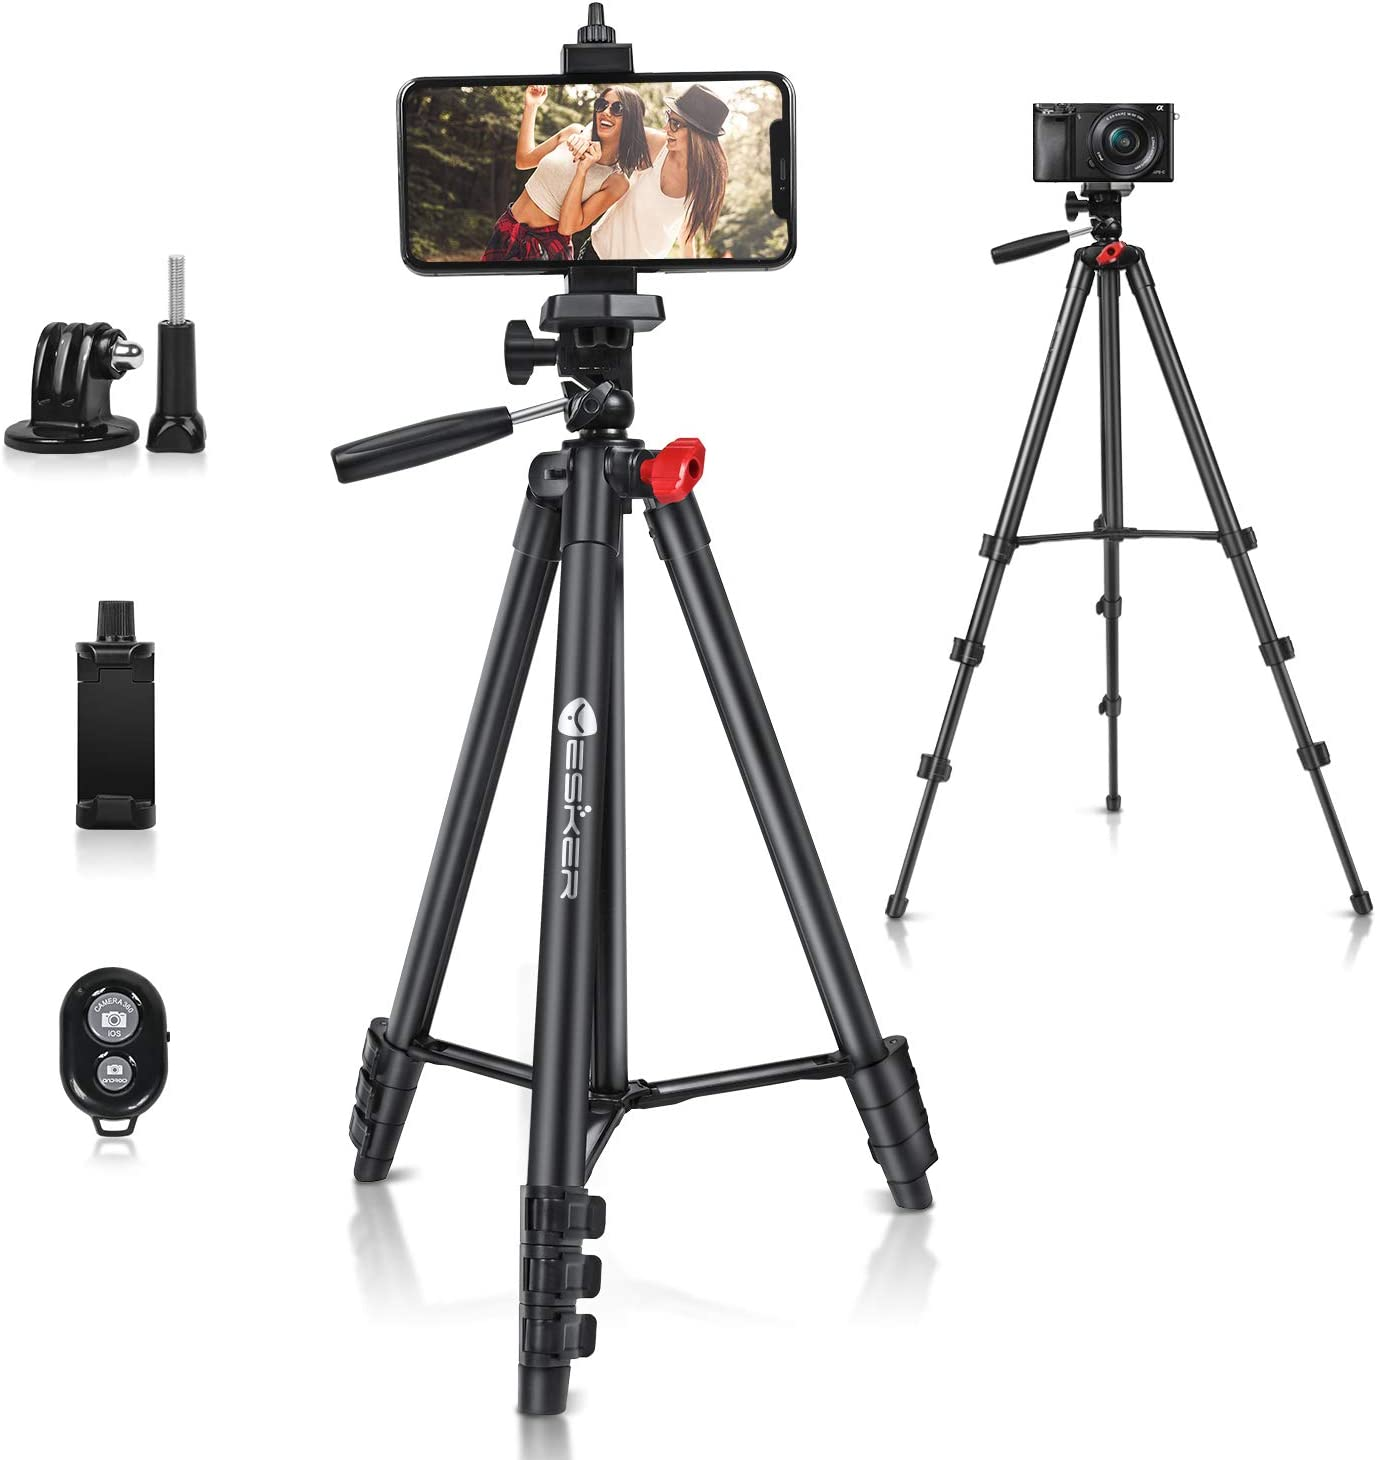 """Yesker Phone Tripod,52"""" Adjustable Premium Aluminum Alloy Tripod Stand with Cell Phone Mount Holder Smartphone Bluetooth Remote Shutter for Travel Zoom TikTok Video Photography Blogging Portrait : Camera & Photo"""